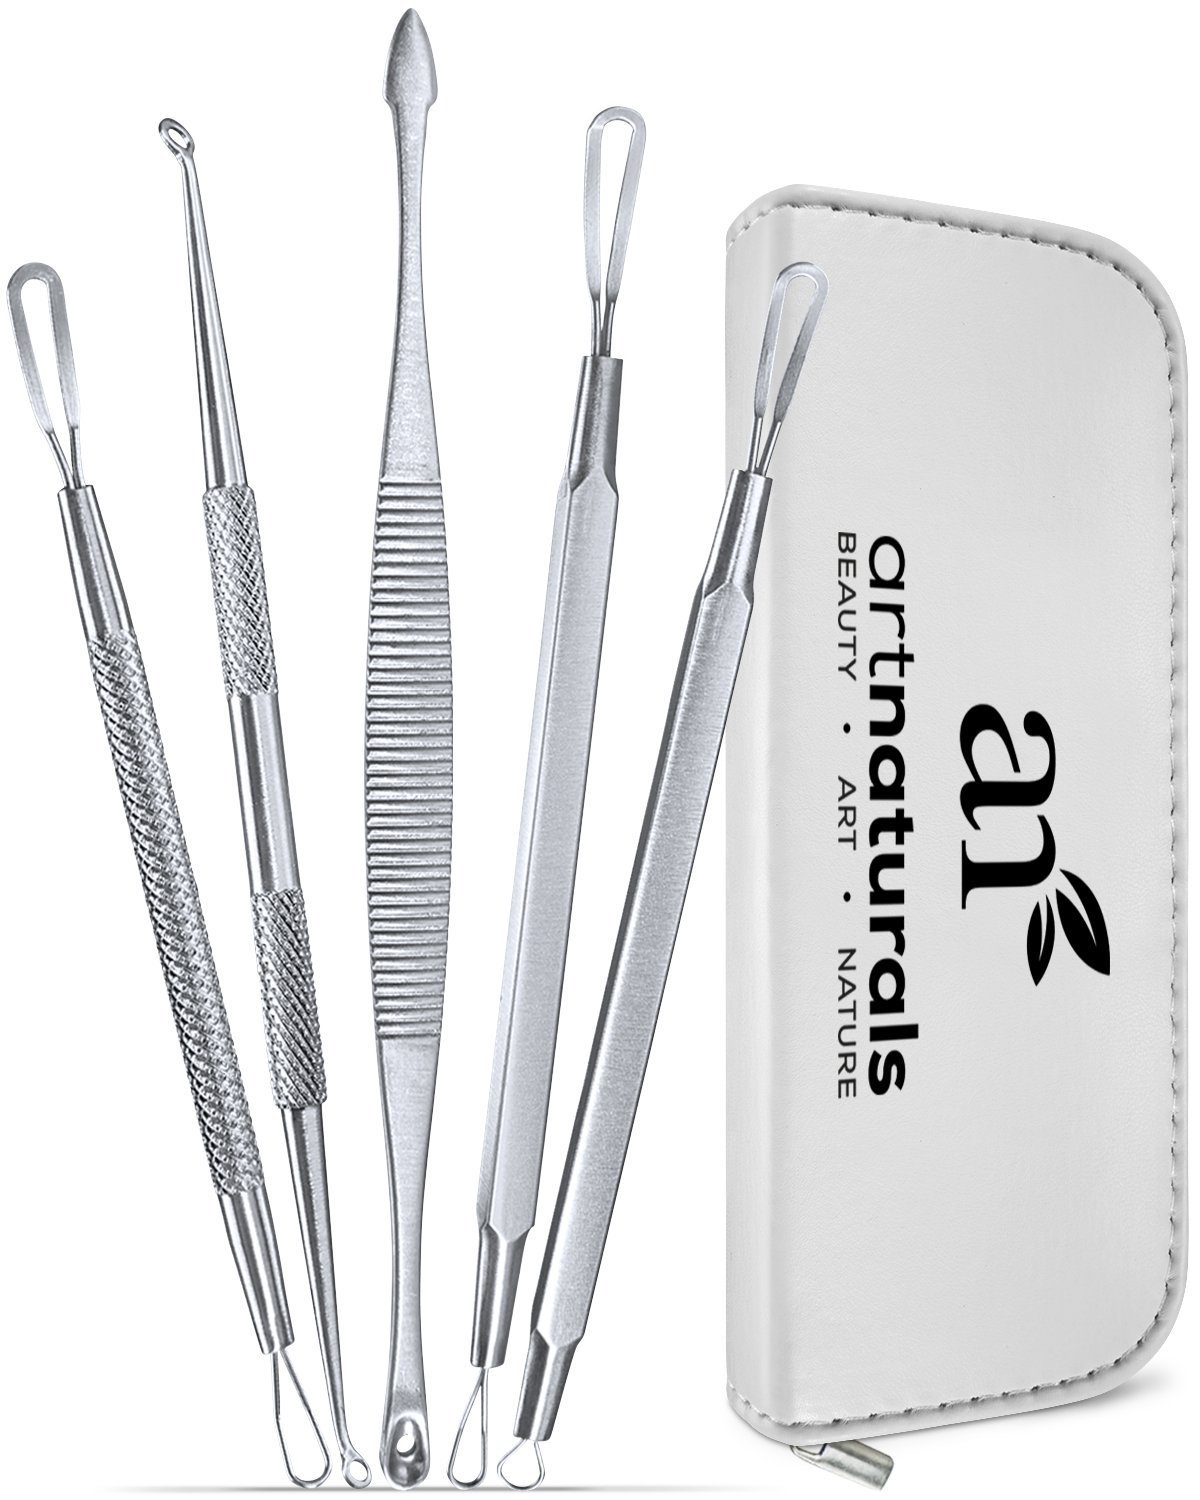 Art Naturals Blackhead Removal Set homepage image art naturals,blackhead removal,blackheads,health and beauty